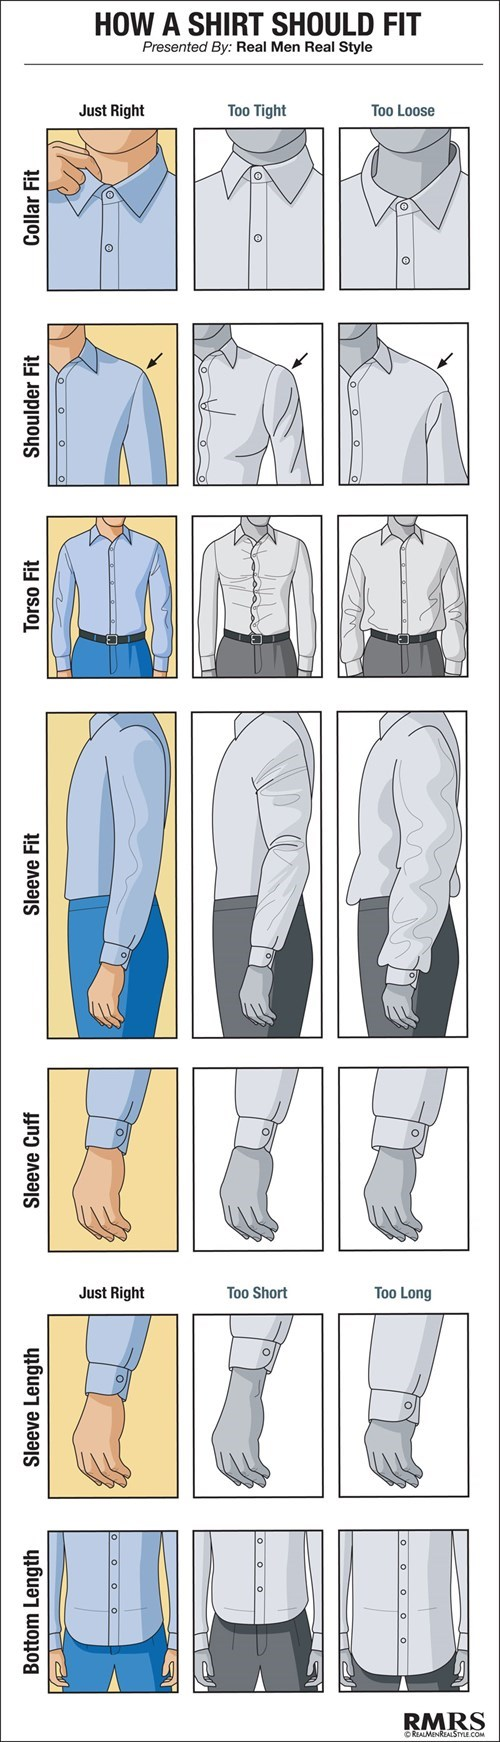 dress shirt infographic fit poorly dressed